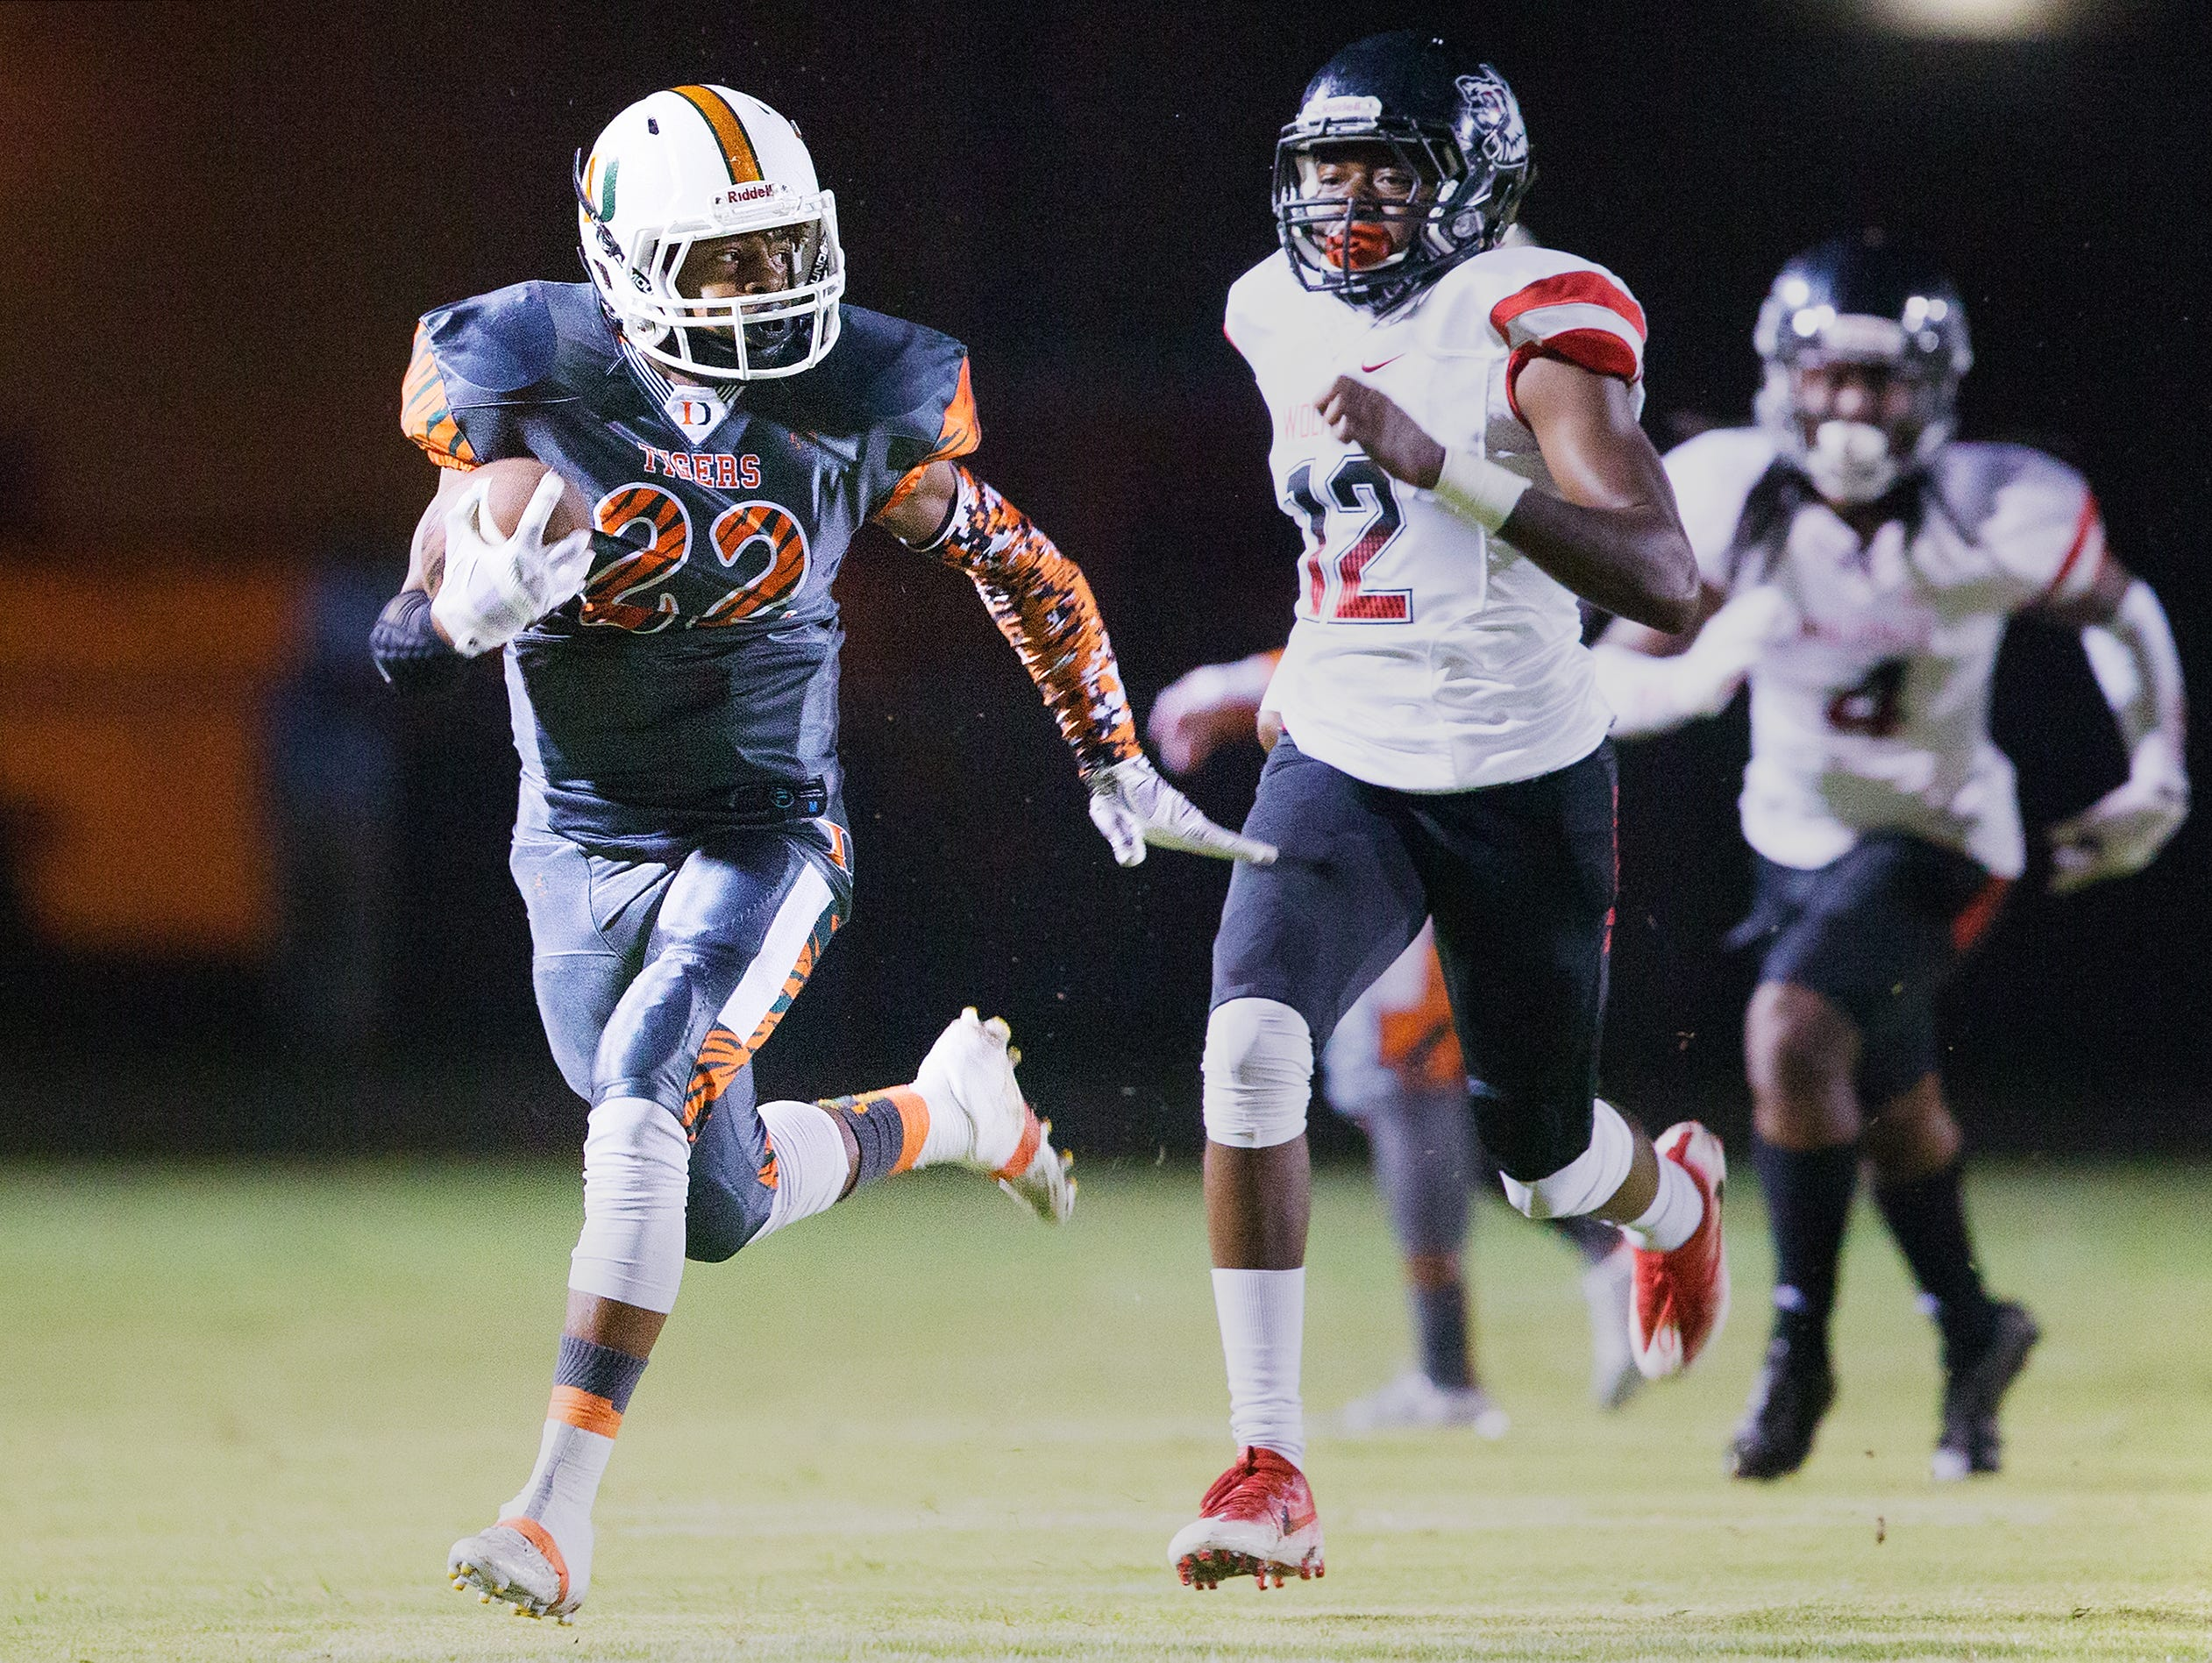 Dunbar can gain a leg up in the race for a postseason berth if it can knock off Immokalee Friday at home in The News-Press Game of the Week.